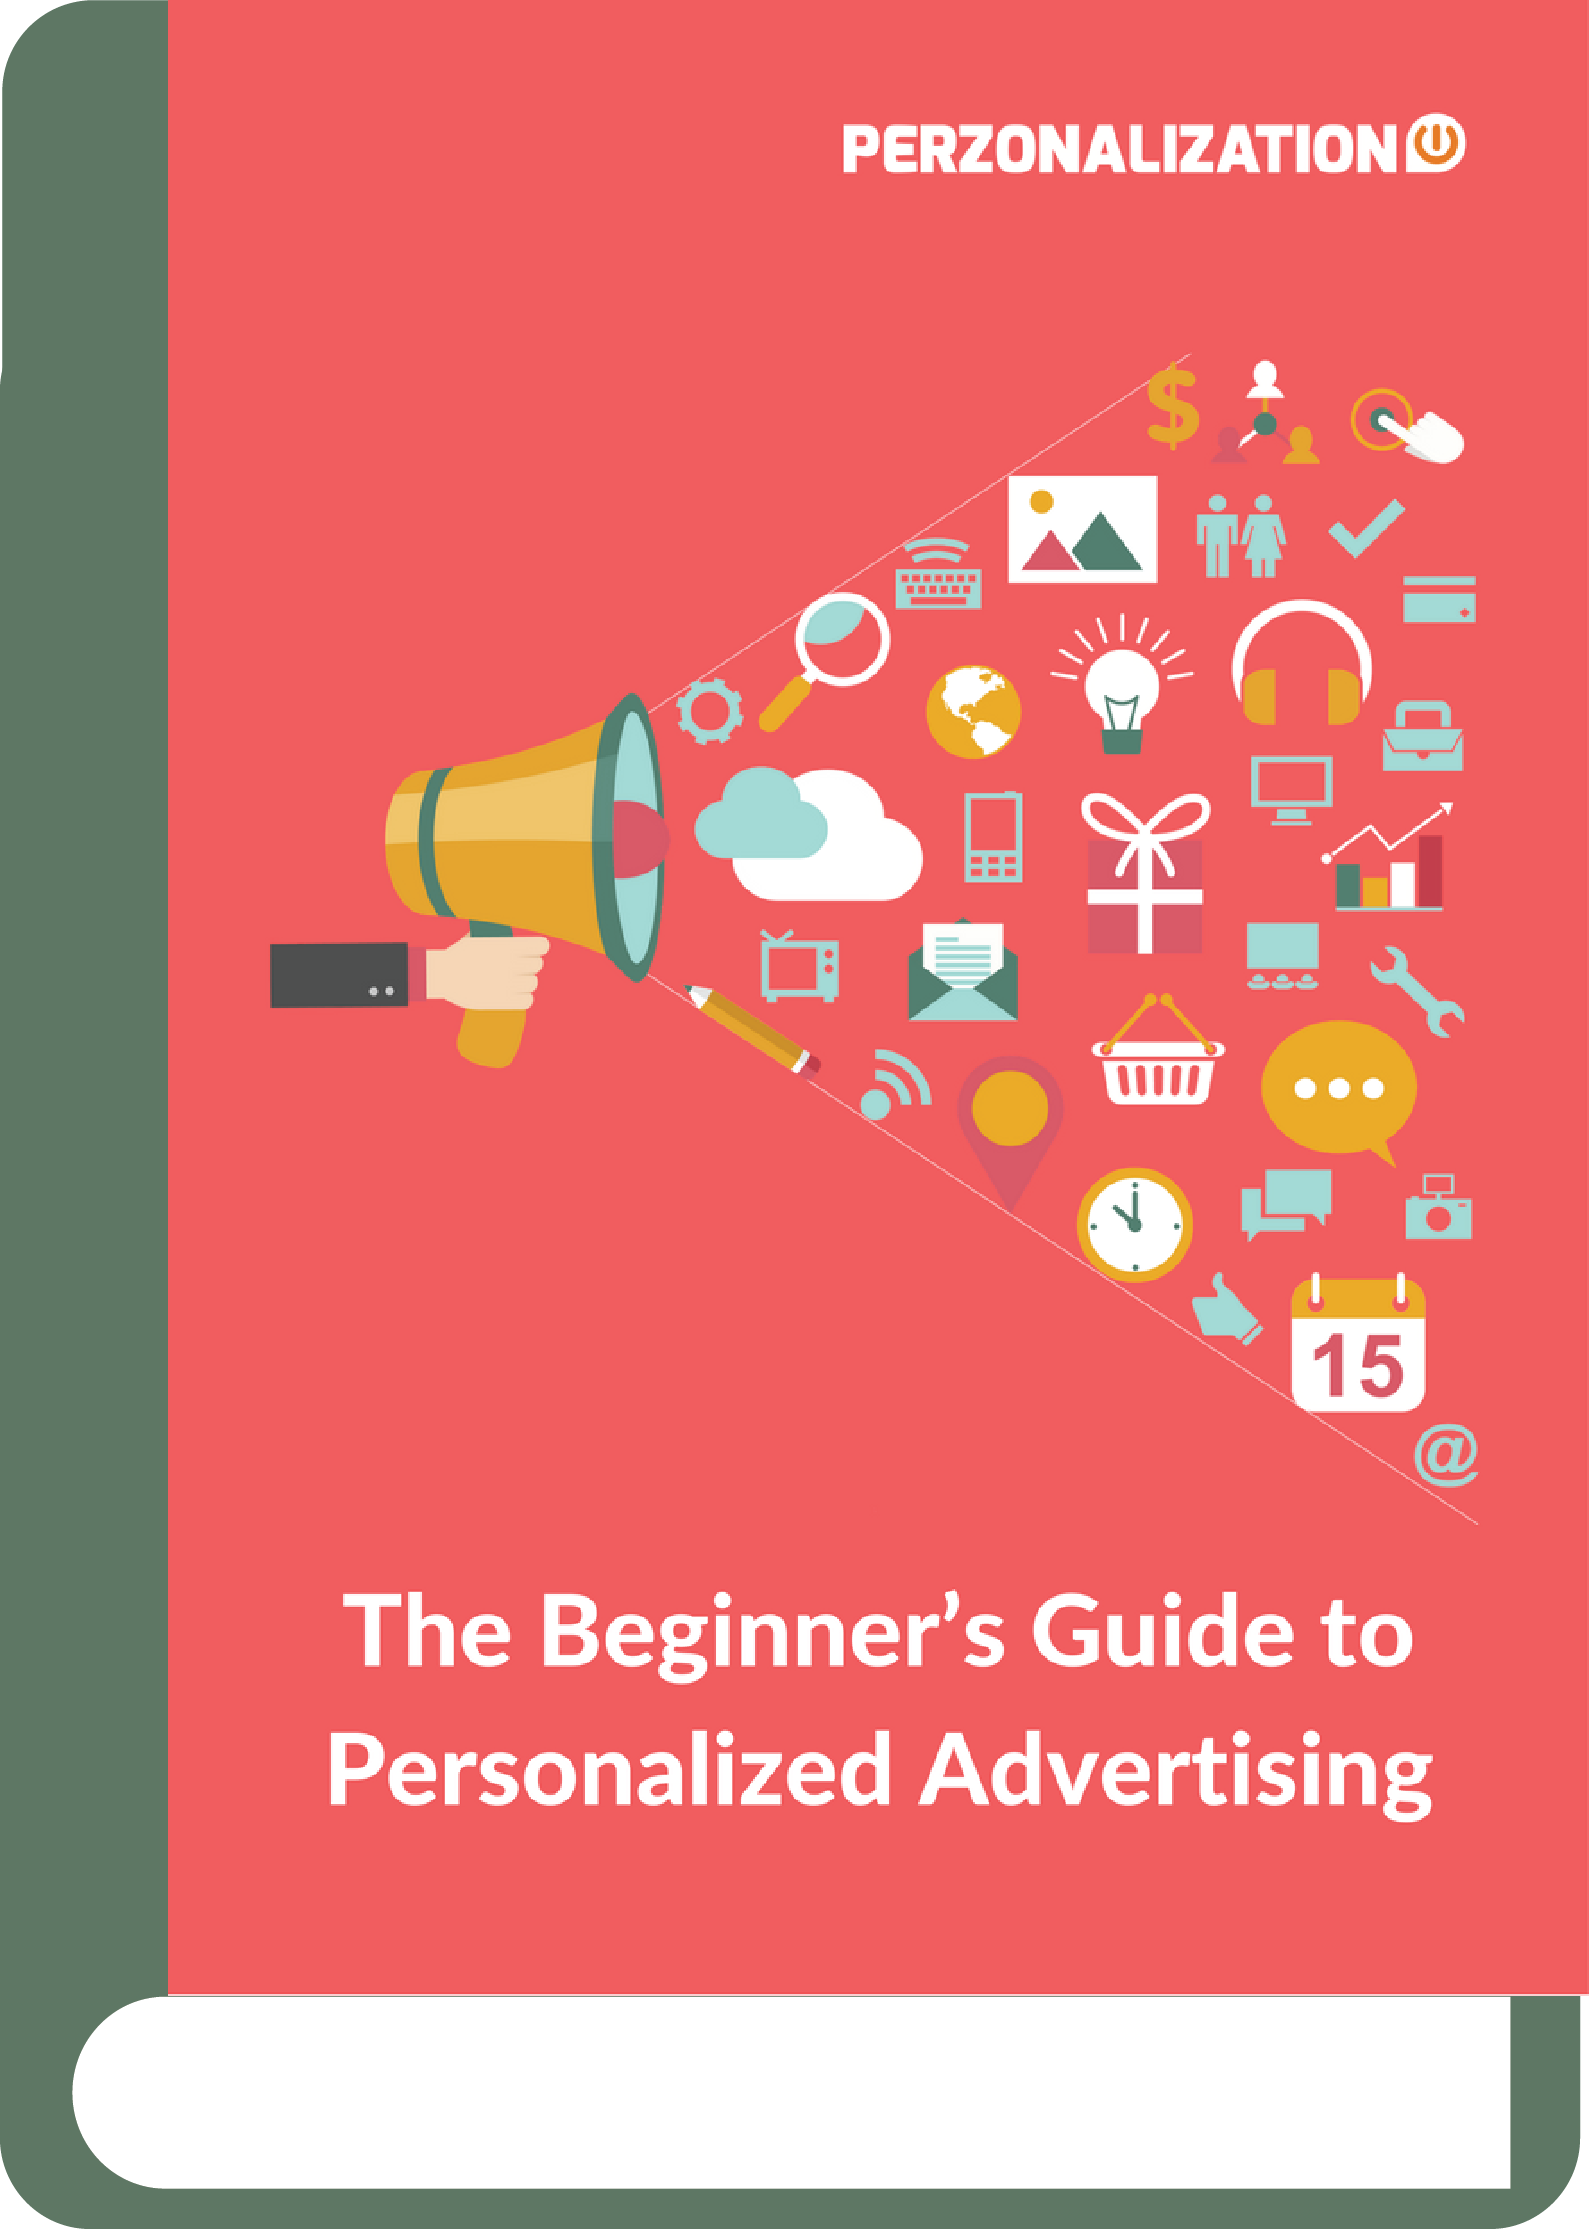 Personalized advertising helps your eCommerce customers because the ads are targeted. It helps you to get into their shoes and give them what they need. Find out more in this free eBook!